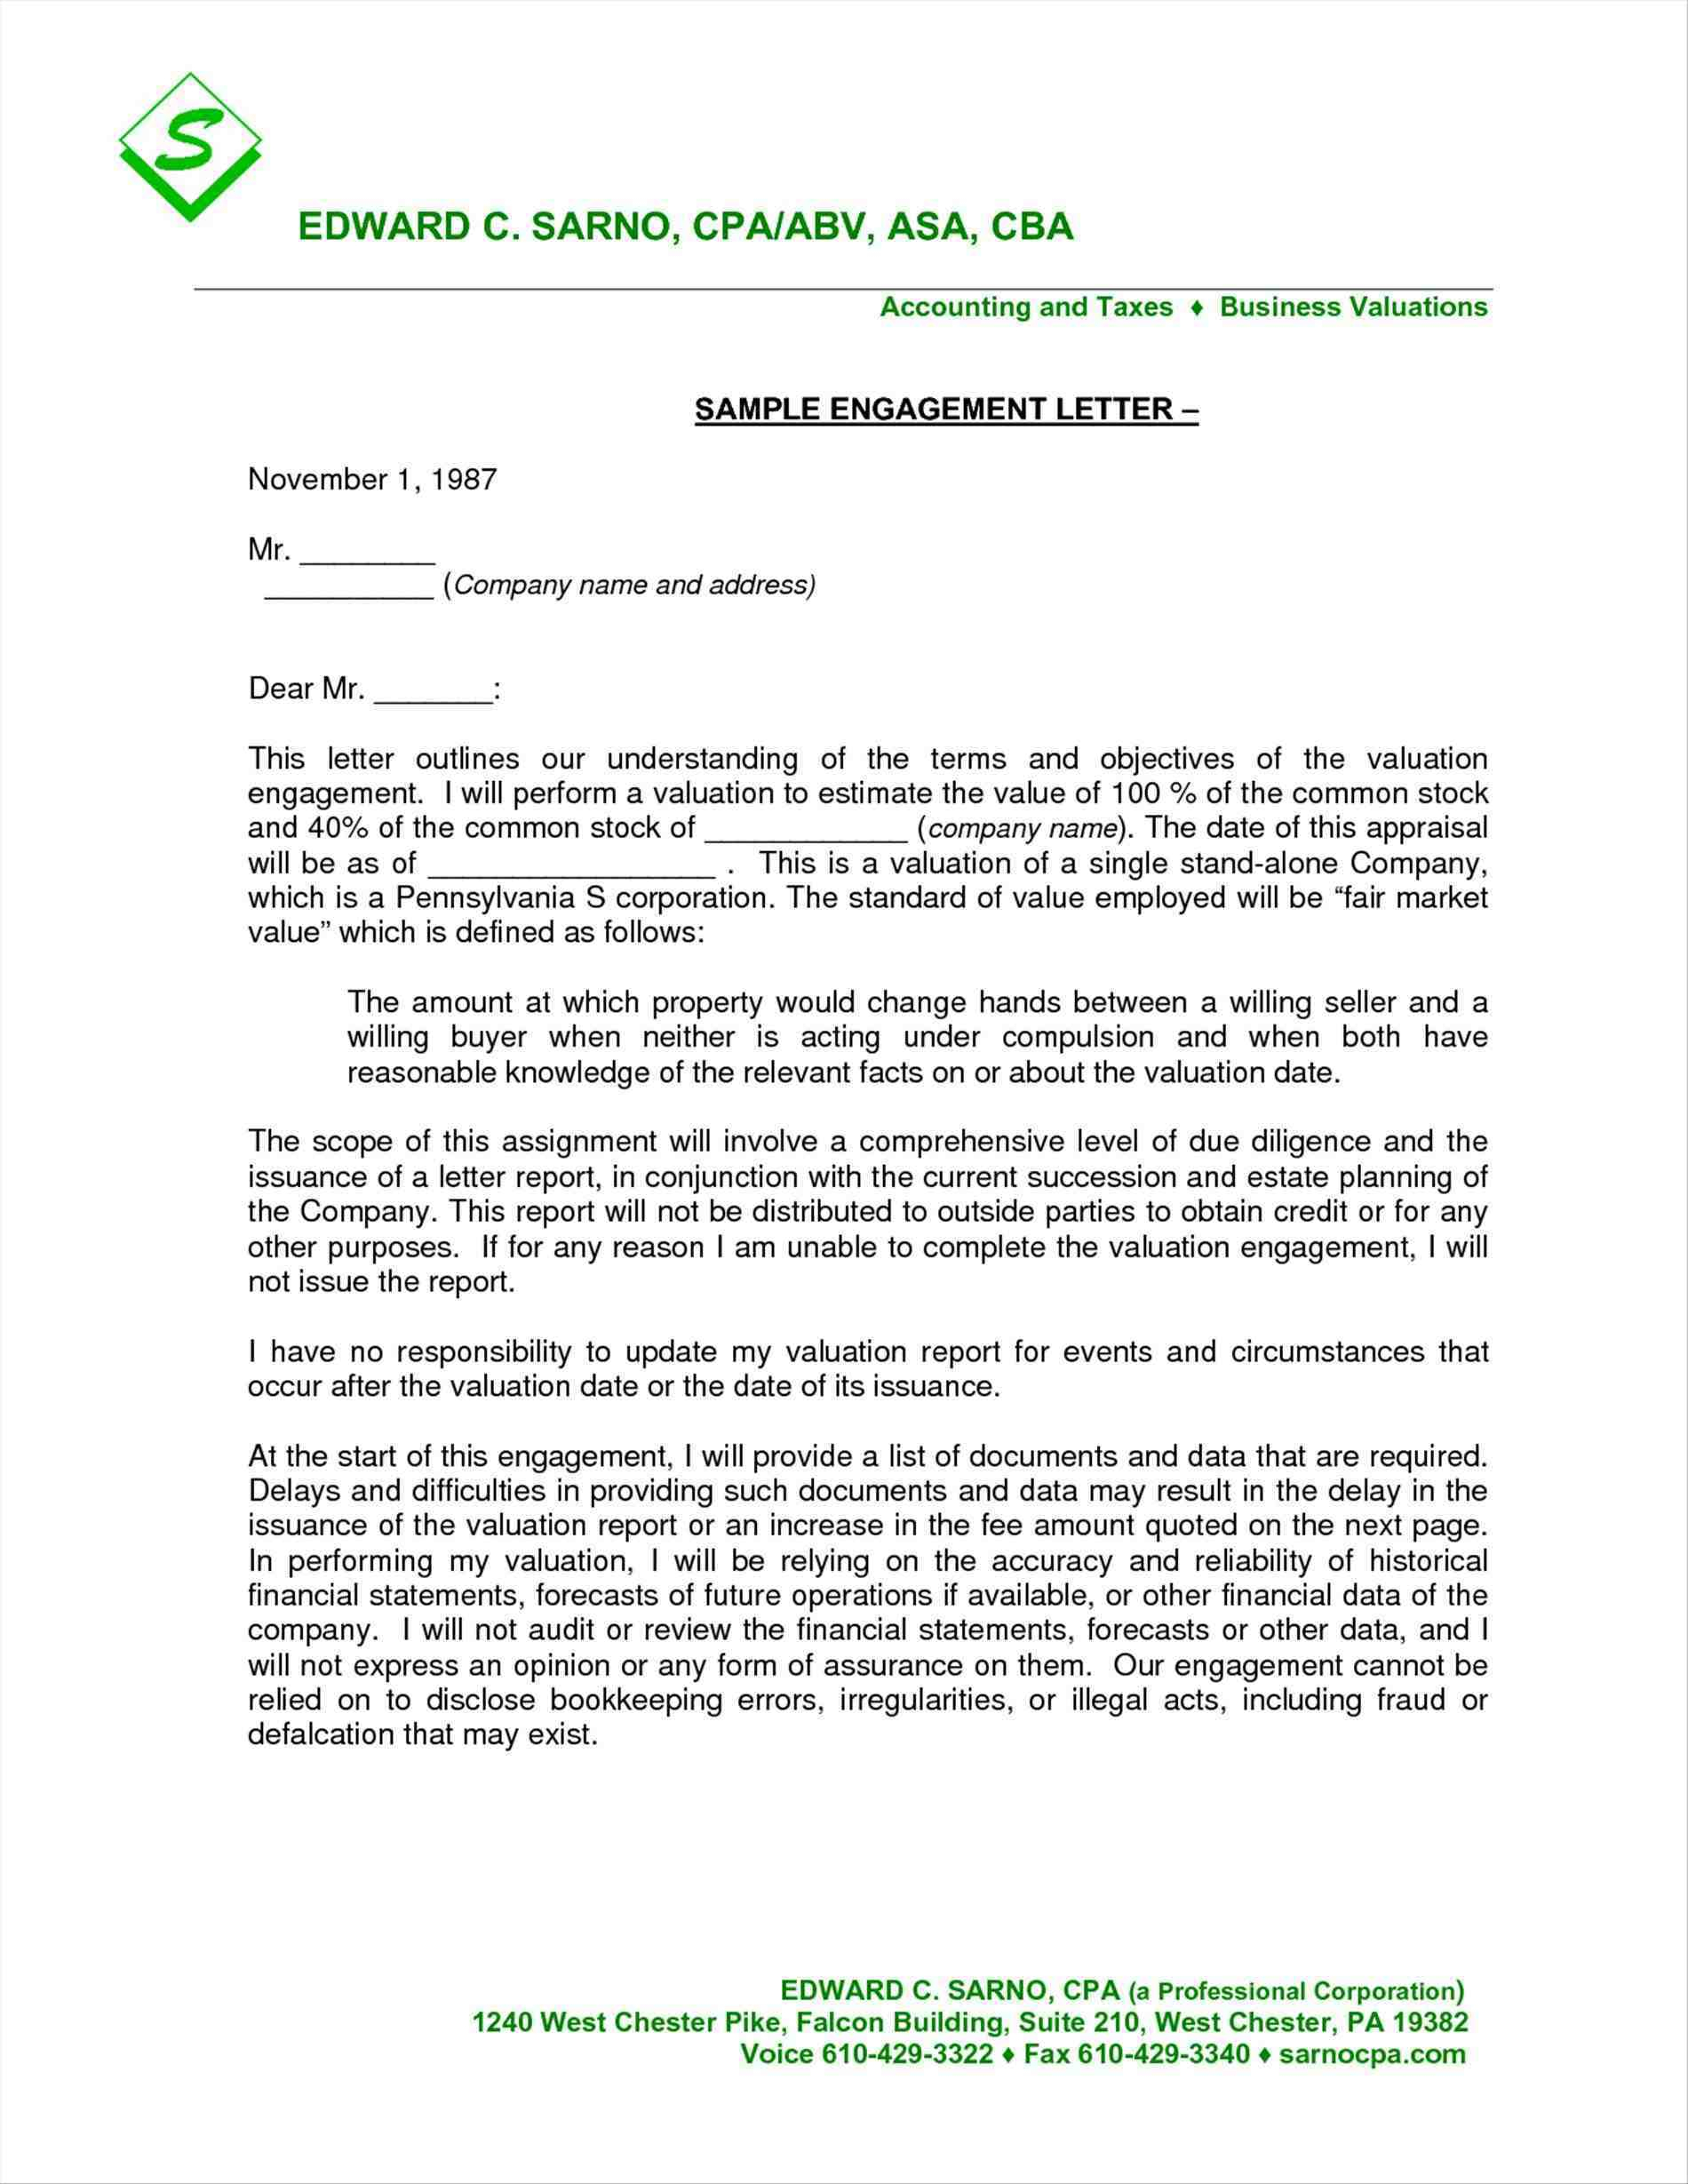 business valuation engagement letter template example-sample engagement letter cpa Search and free cover letter templates collections Download for free for mercial or non mercial projects 2-l